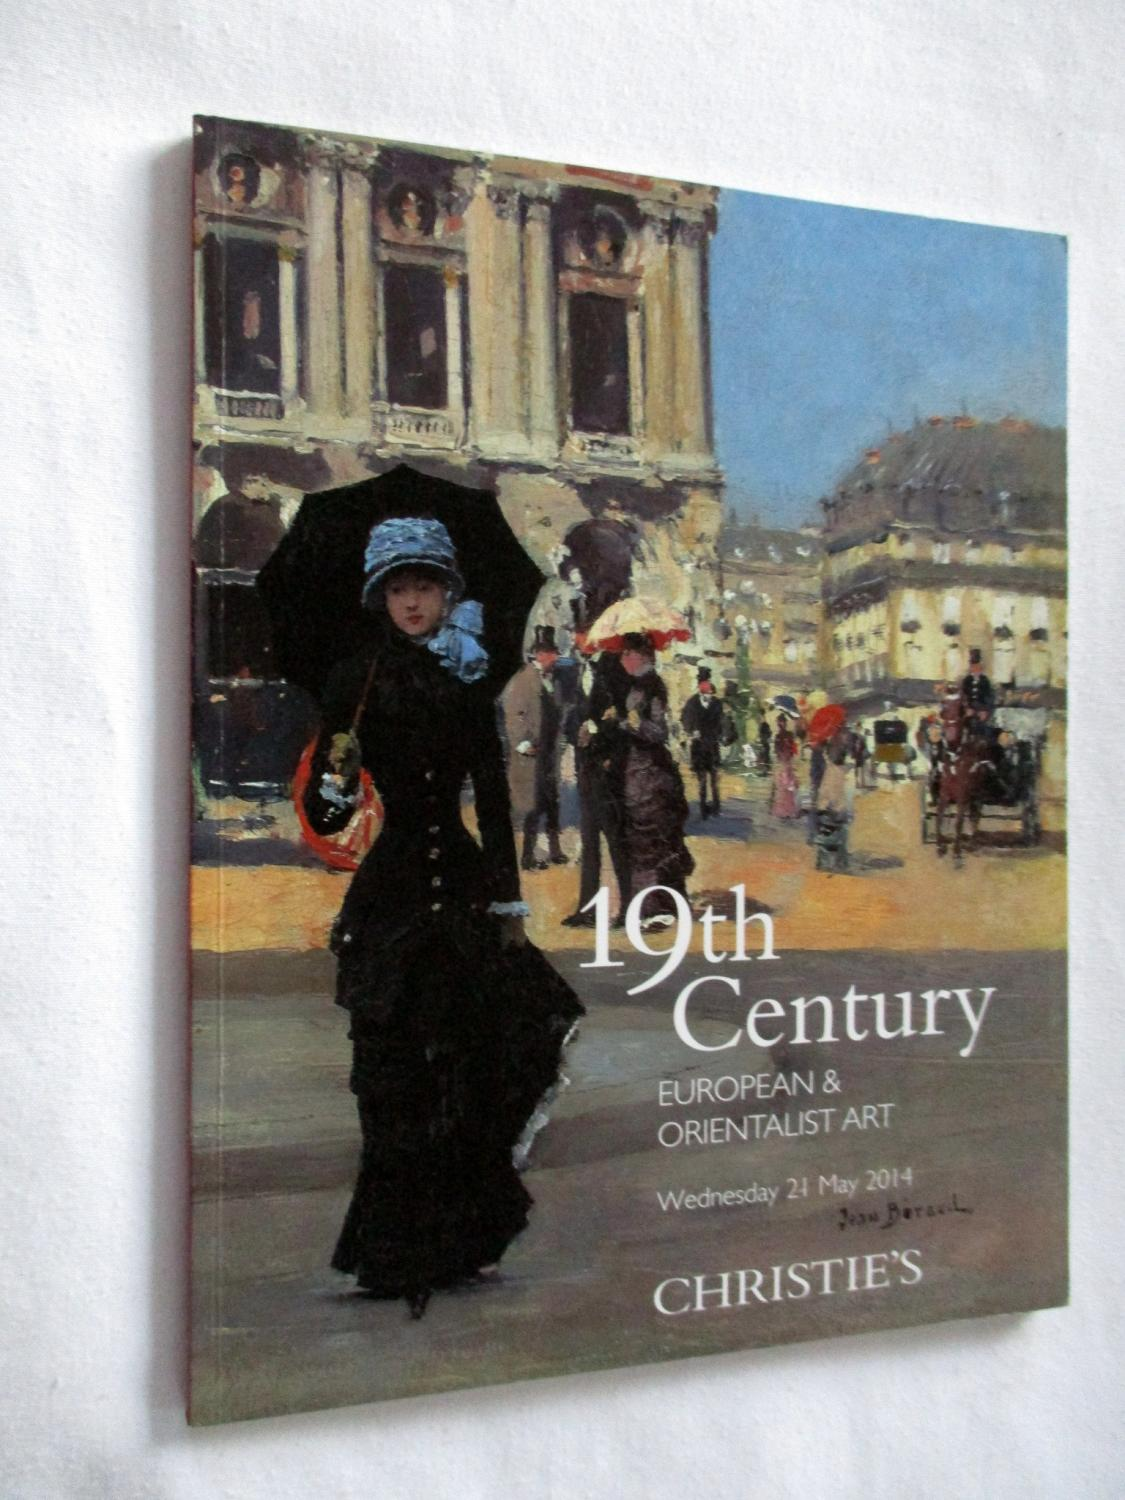 Rosali Bremen Christies 19th Century European Art Abebooks